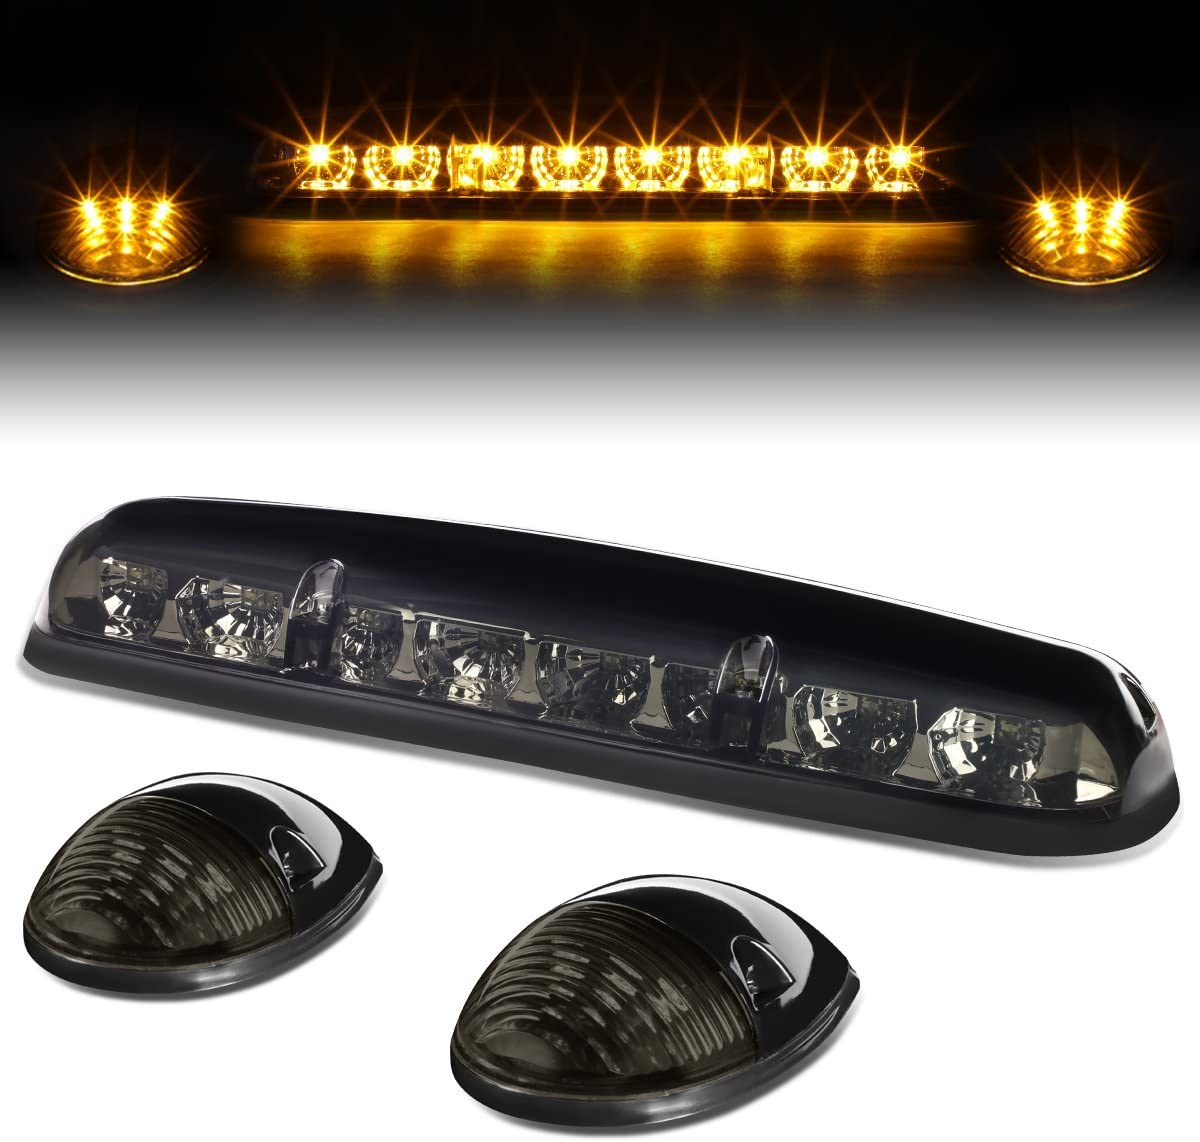 Replacement for 02-07 Silverado Sierra GMT800 LED Cab Roof Top Center Running Light+Pair Side Lamps (Smoked Yellow LED)